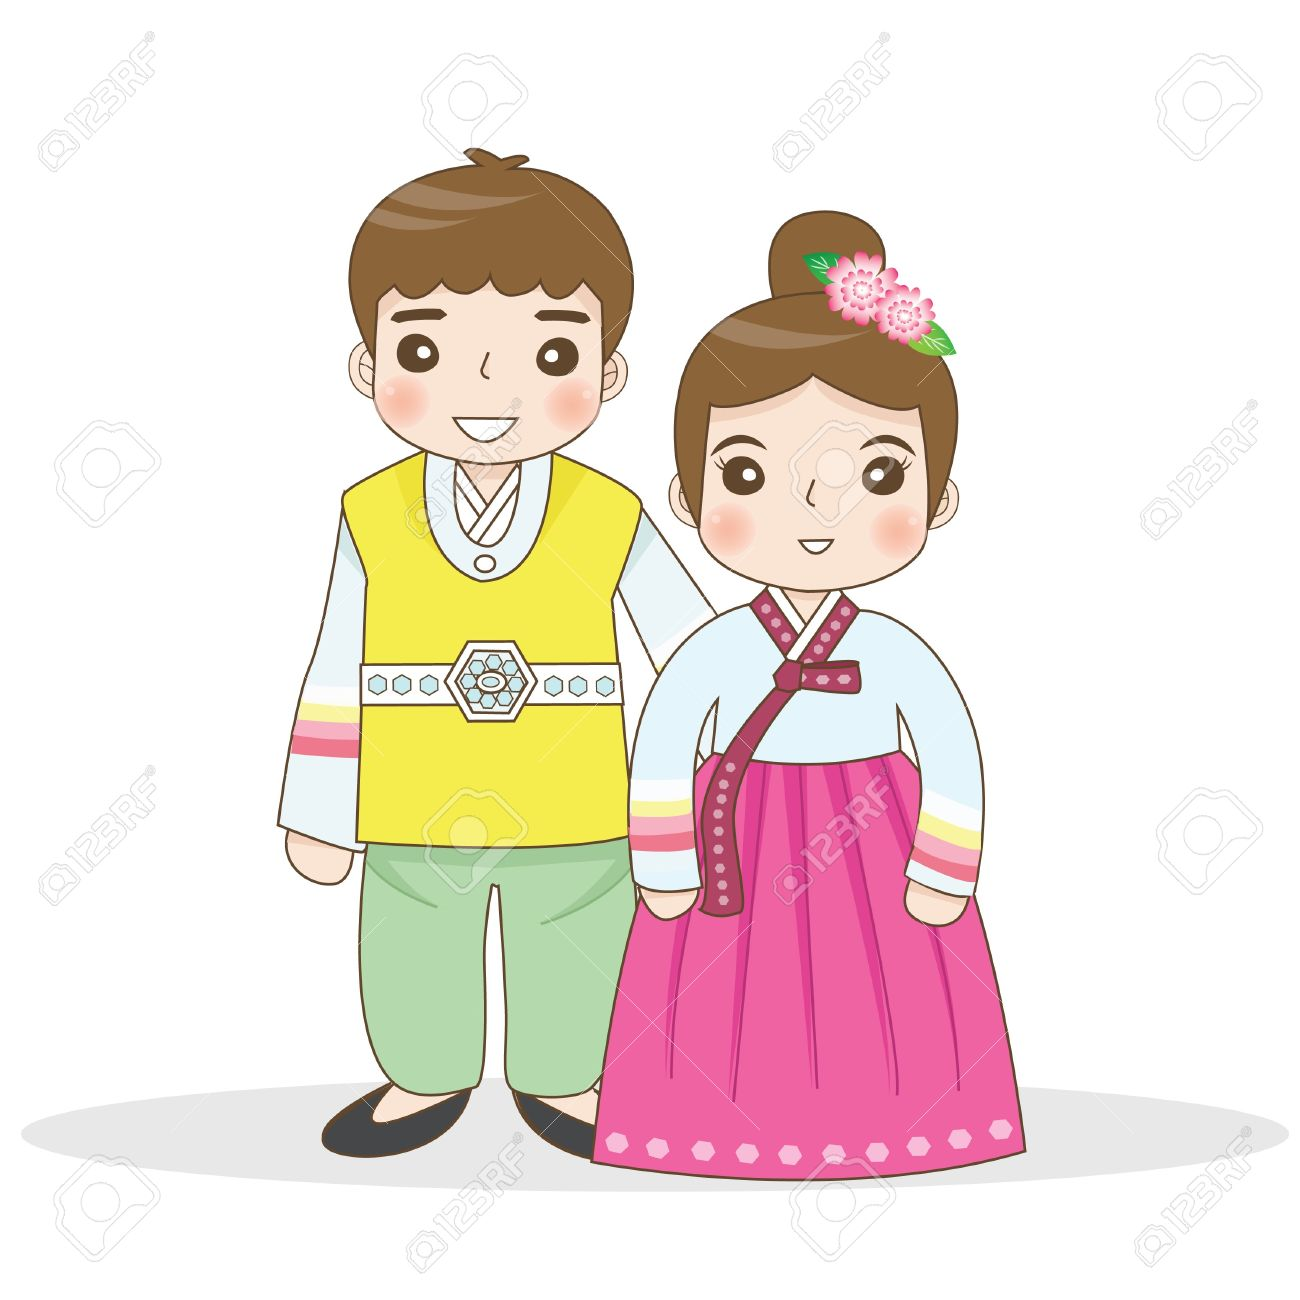 Korean Traditional Dress Clipart.